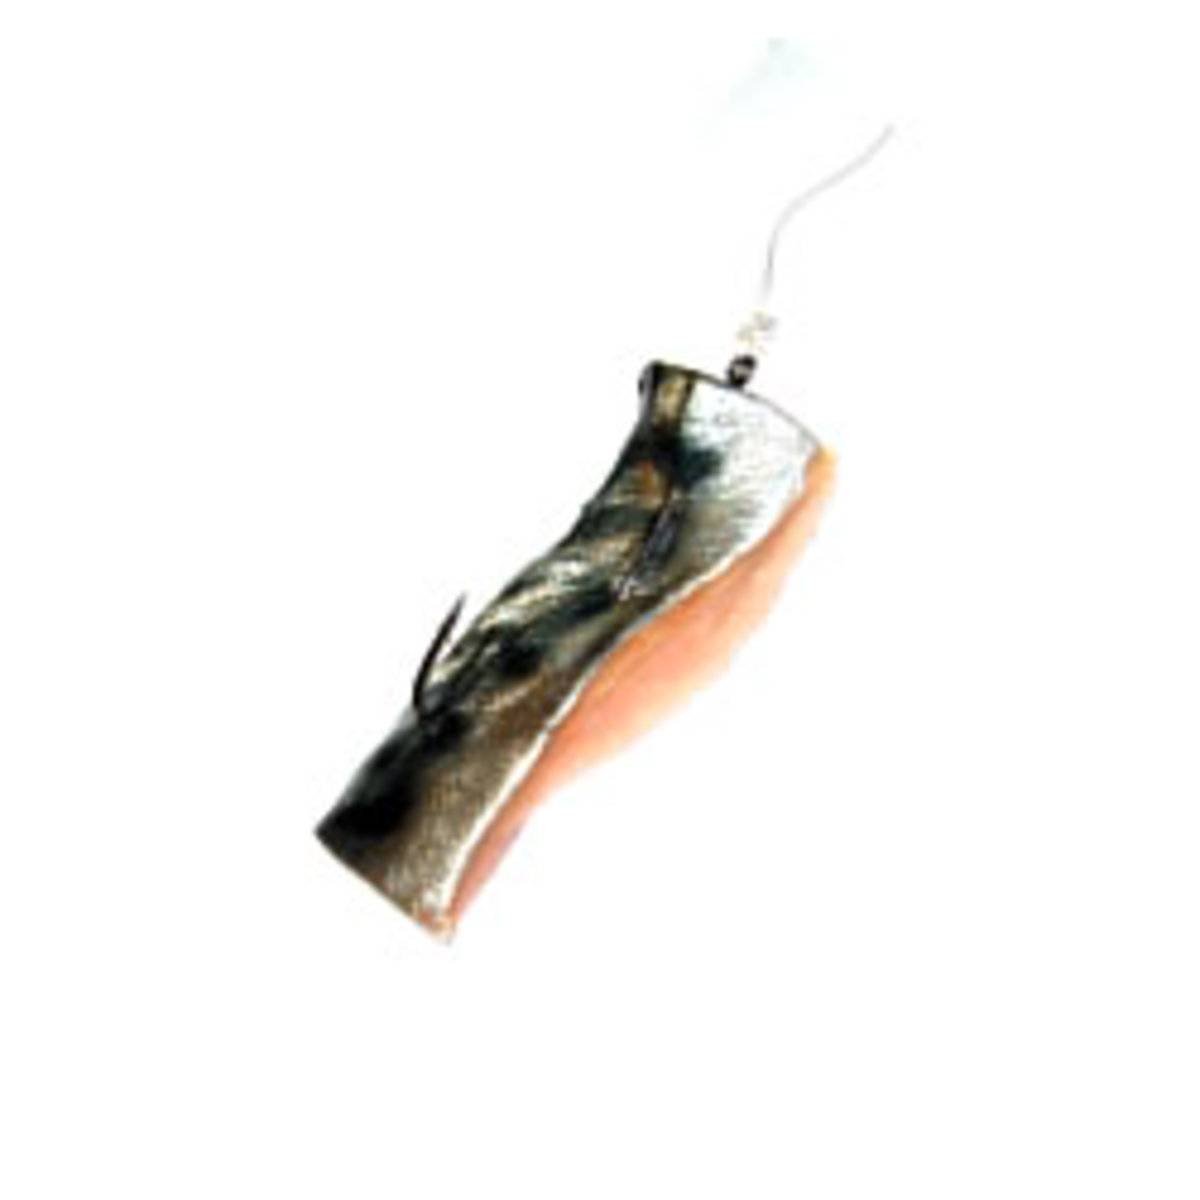 Mackerel baited hook